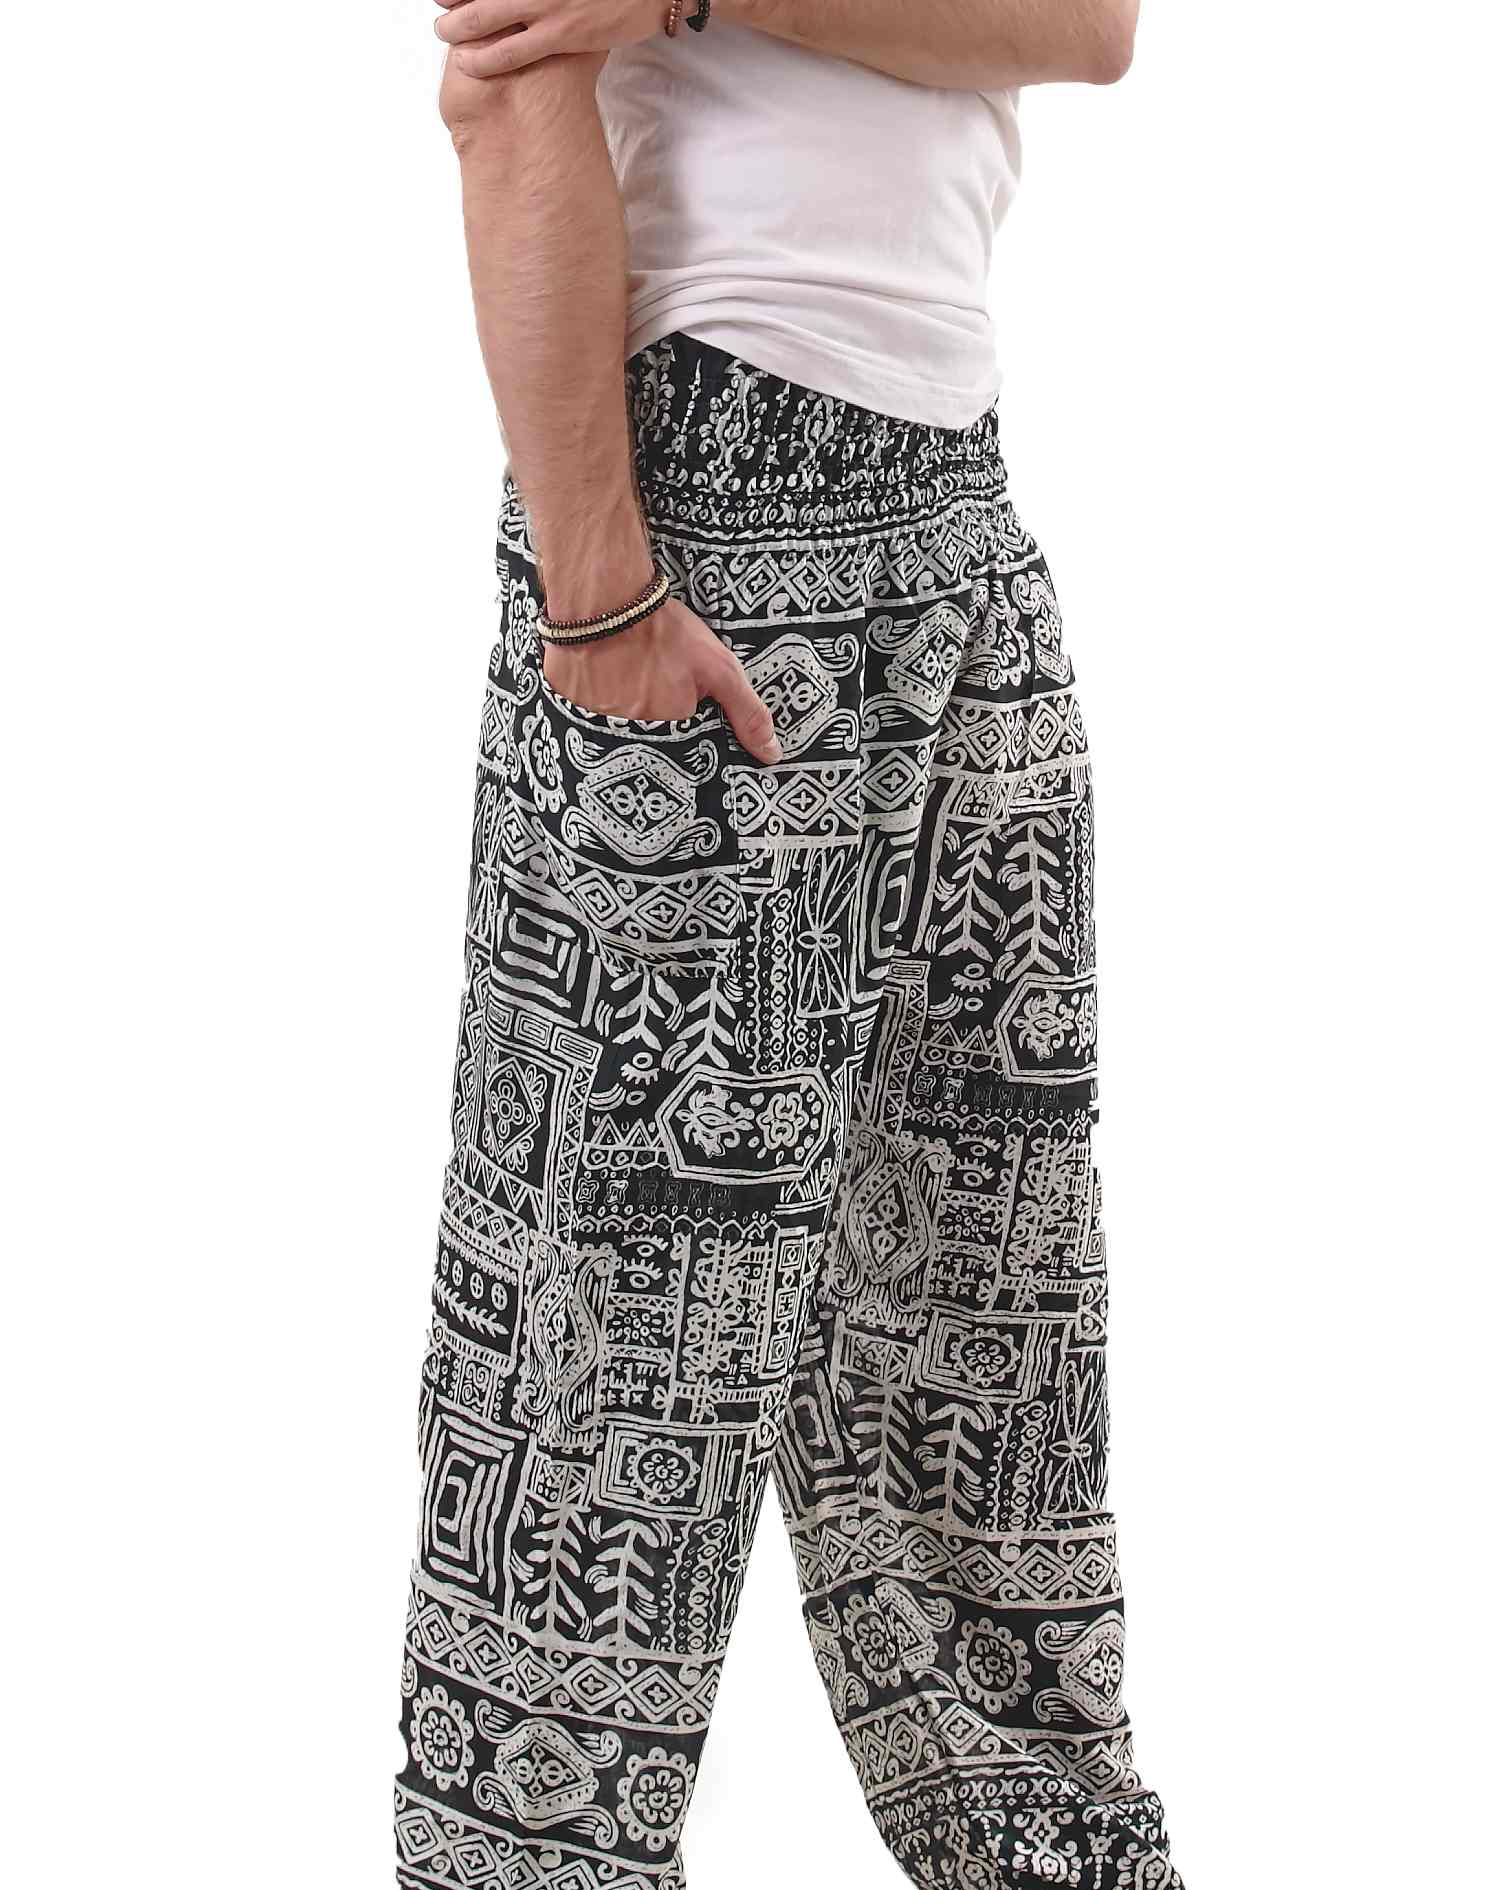 You searched for: mens harem pants! Etsy is the home to thousands of handmade, vintage, and one-of-a-kind products and gifts related to your search. No matter what you're looking for or where you are in the world, our global marketplace of sellers can help you find unique and affordable options. Let's get started!